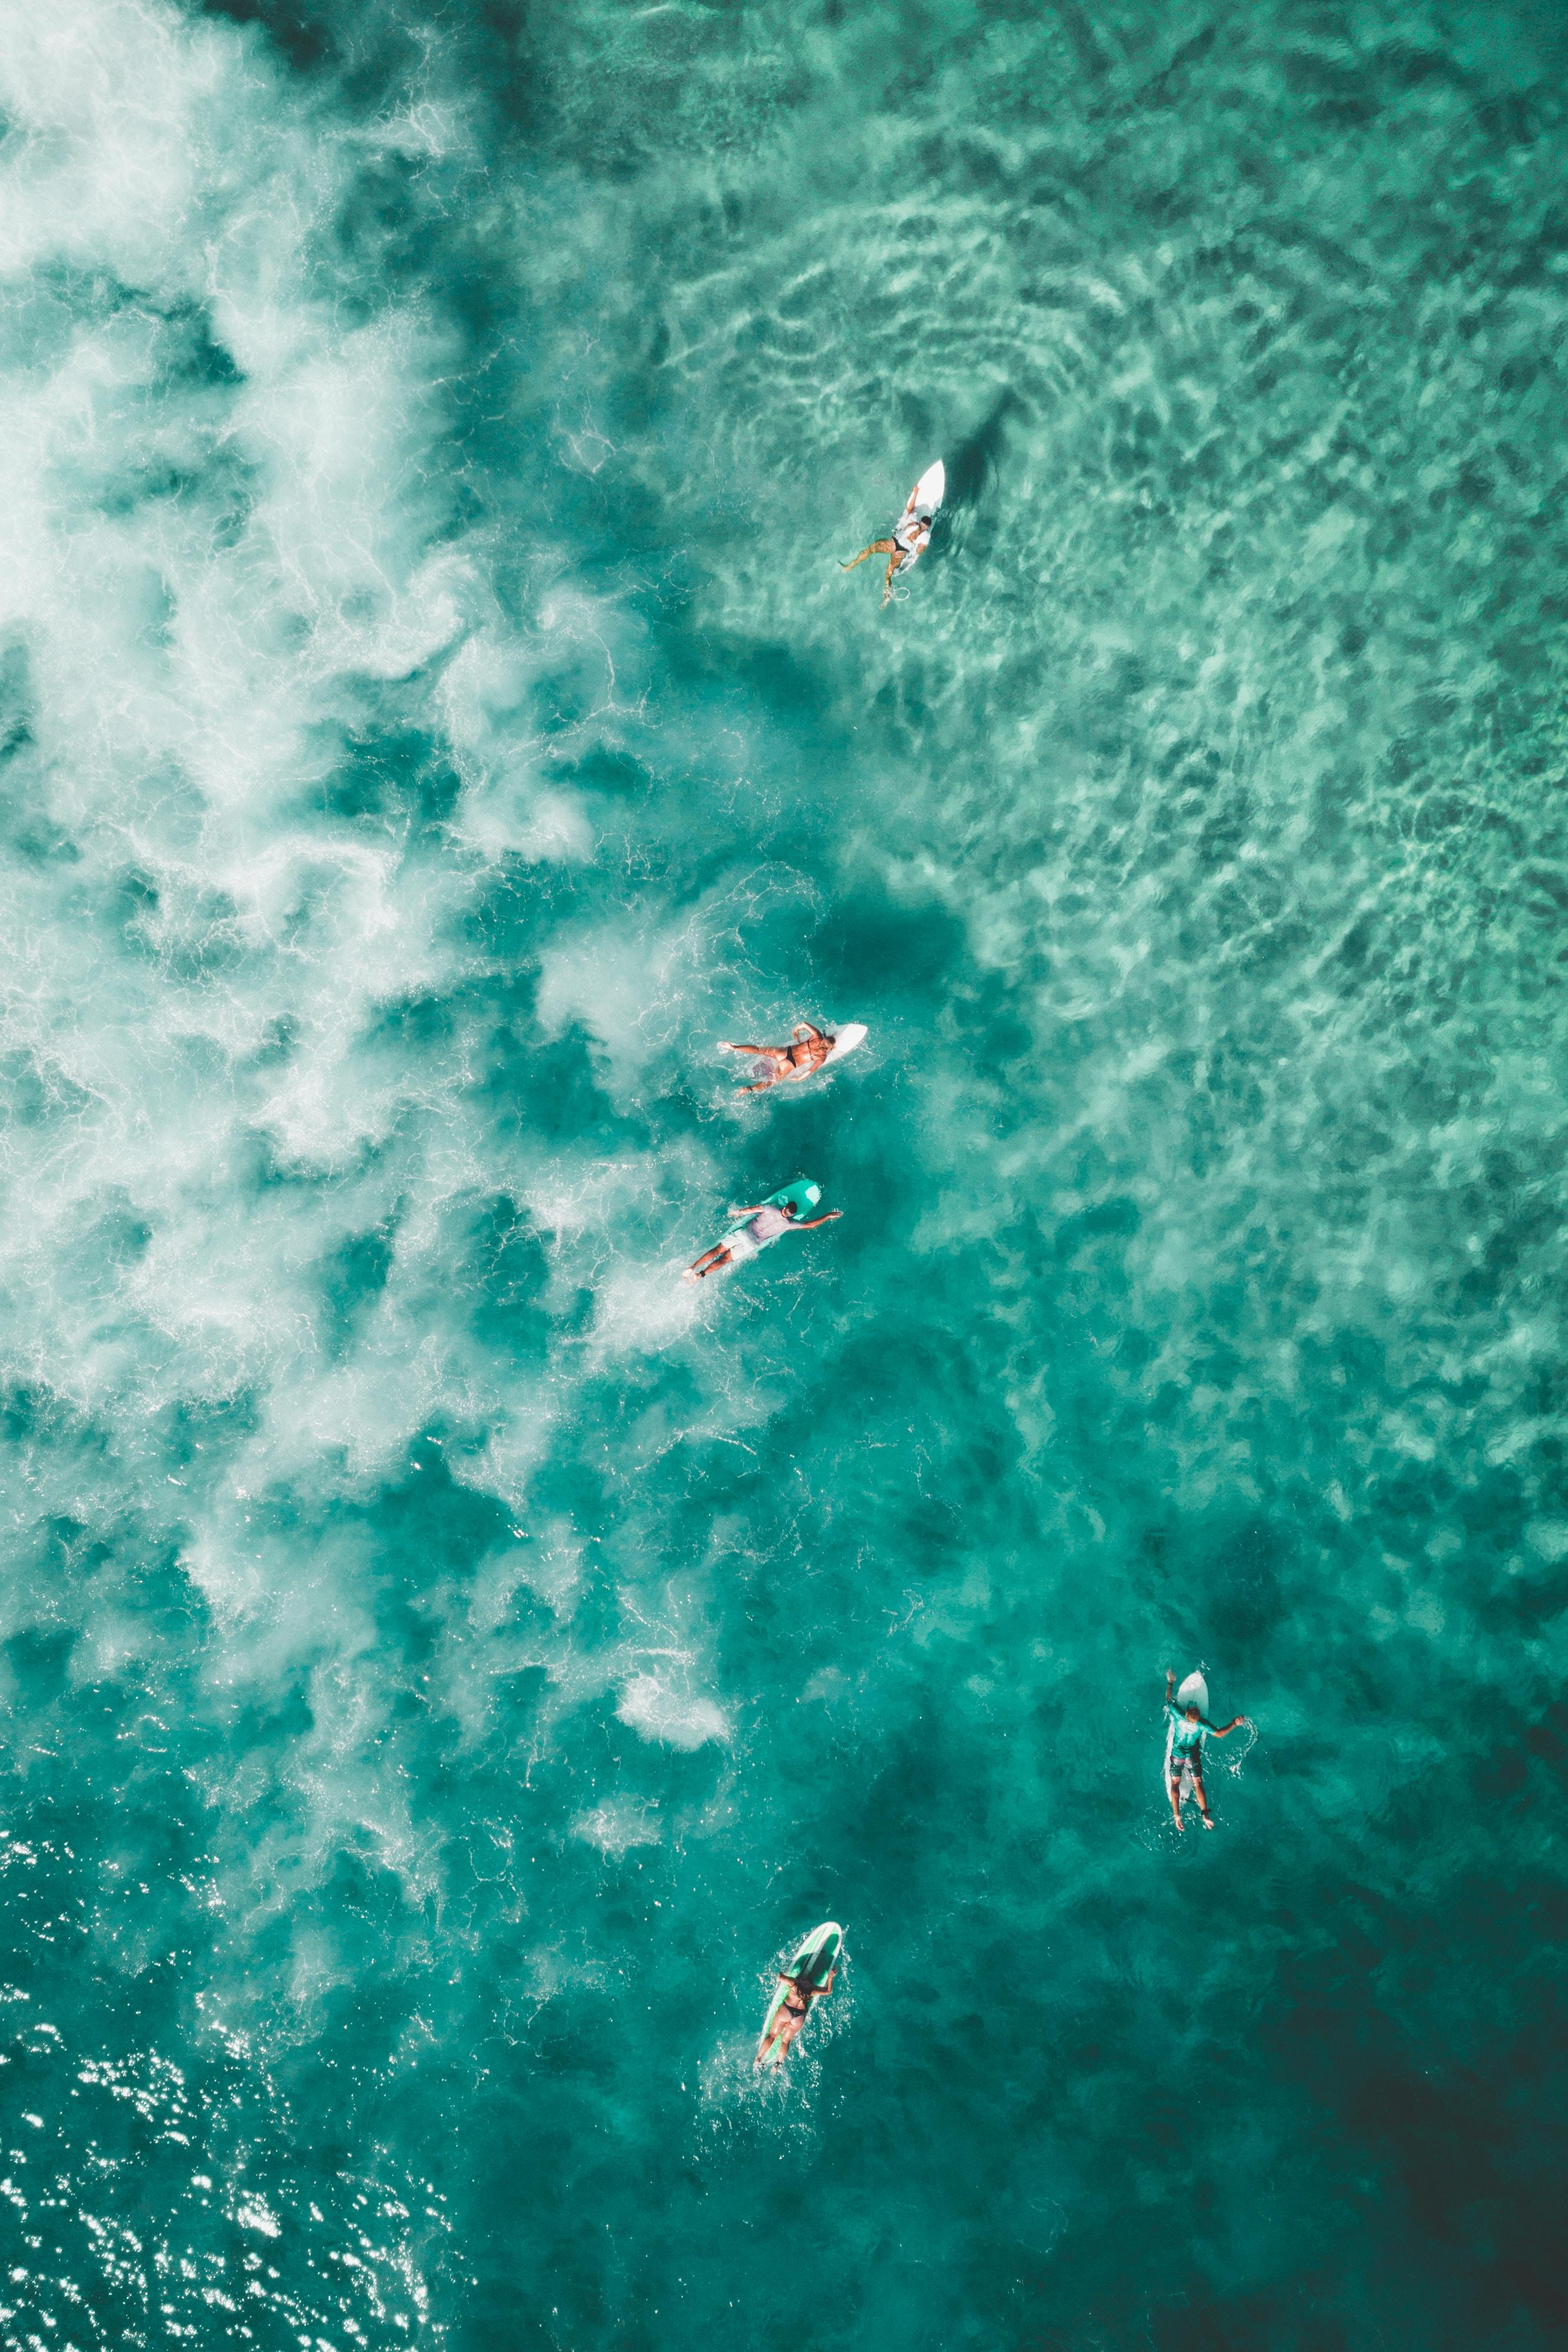 Download Bondi Beach Surfers Android Wallpaper | Yes Android